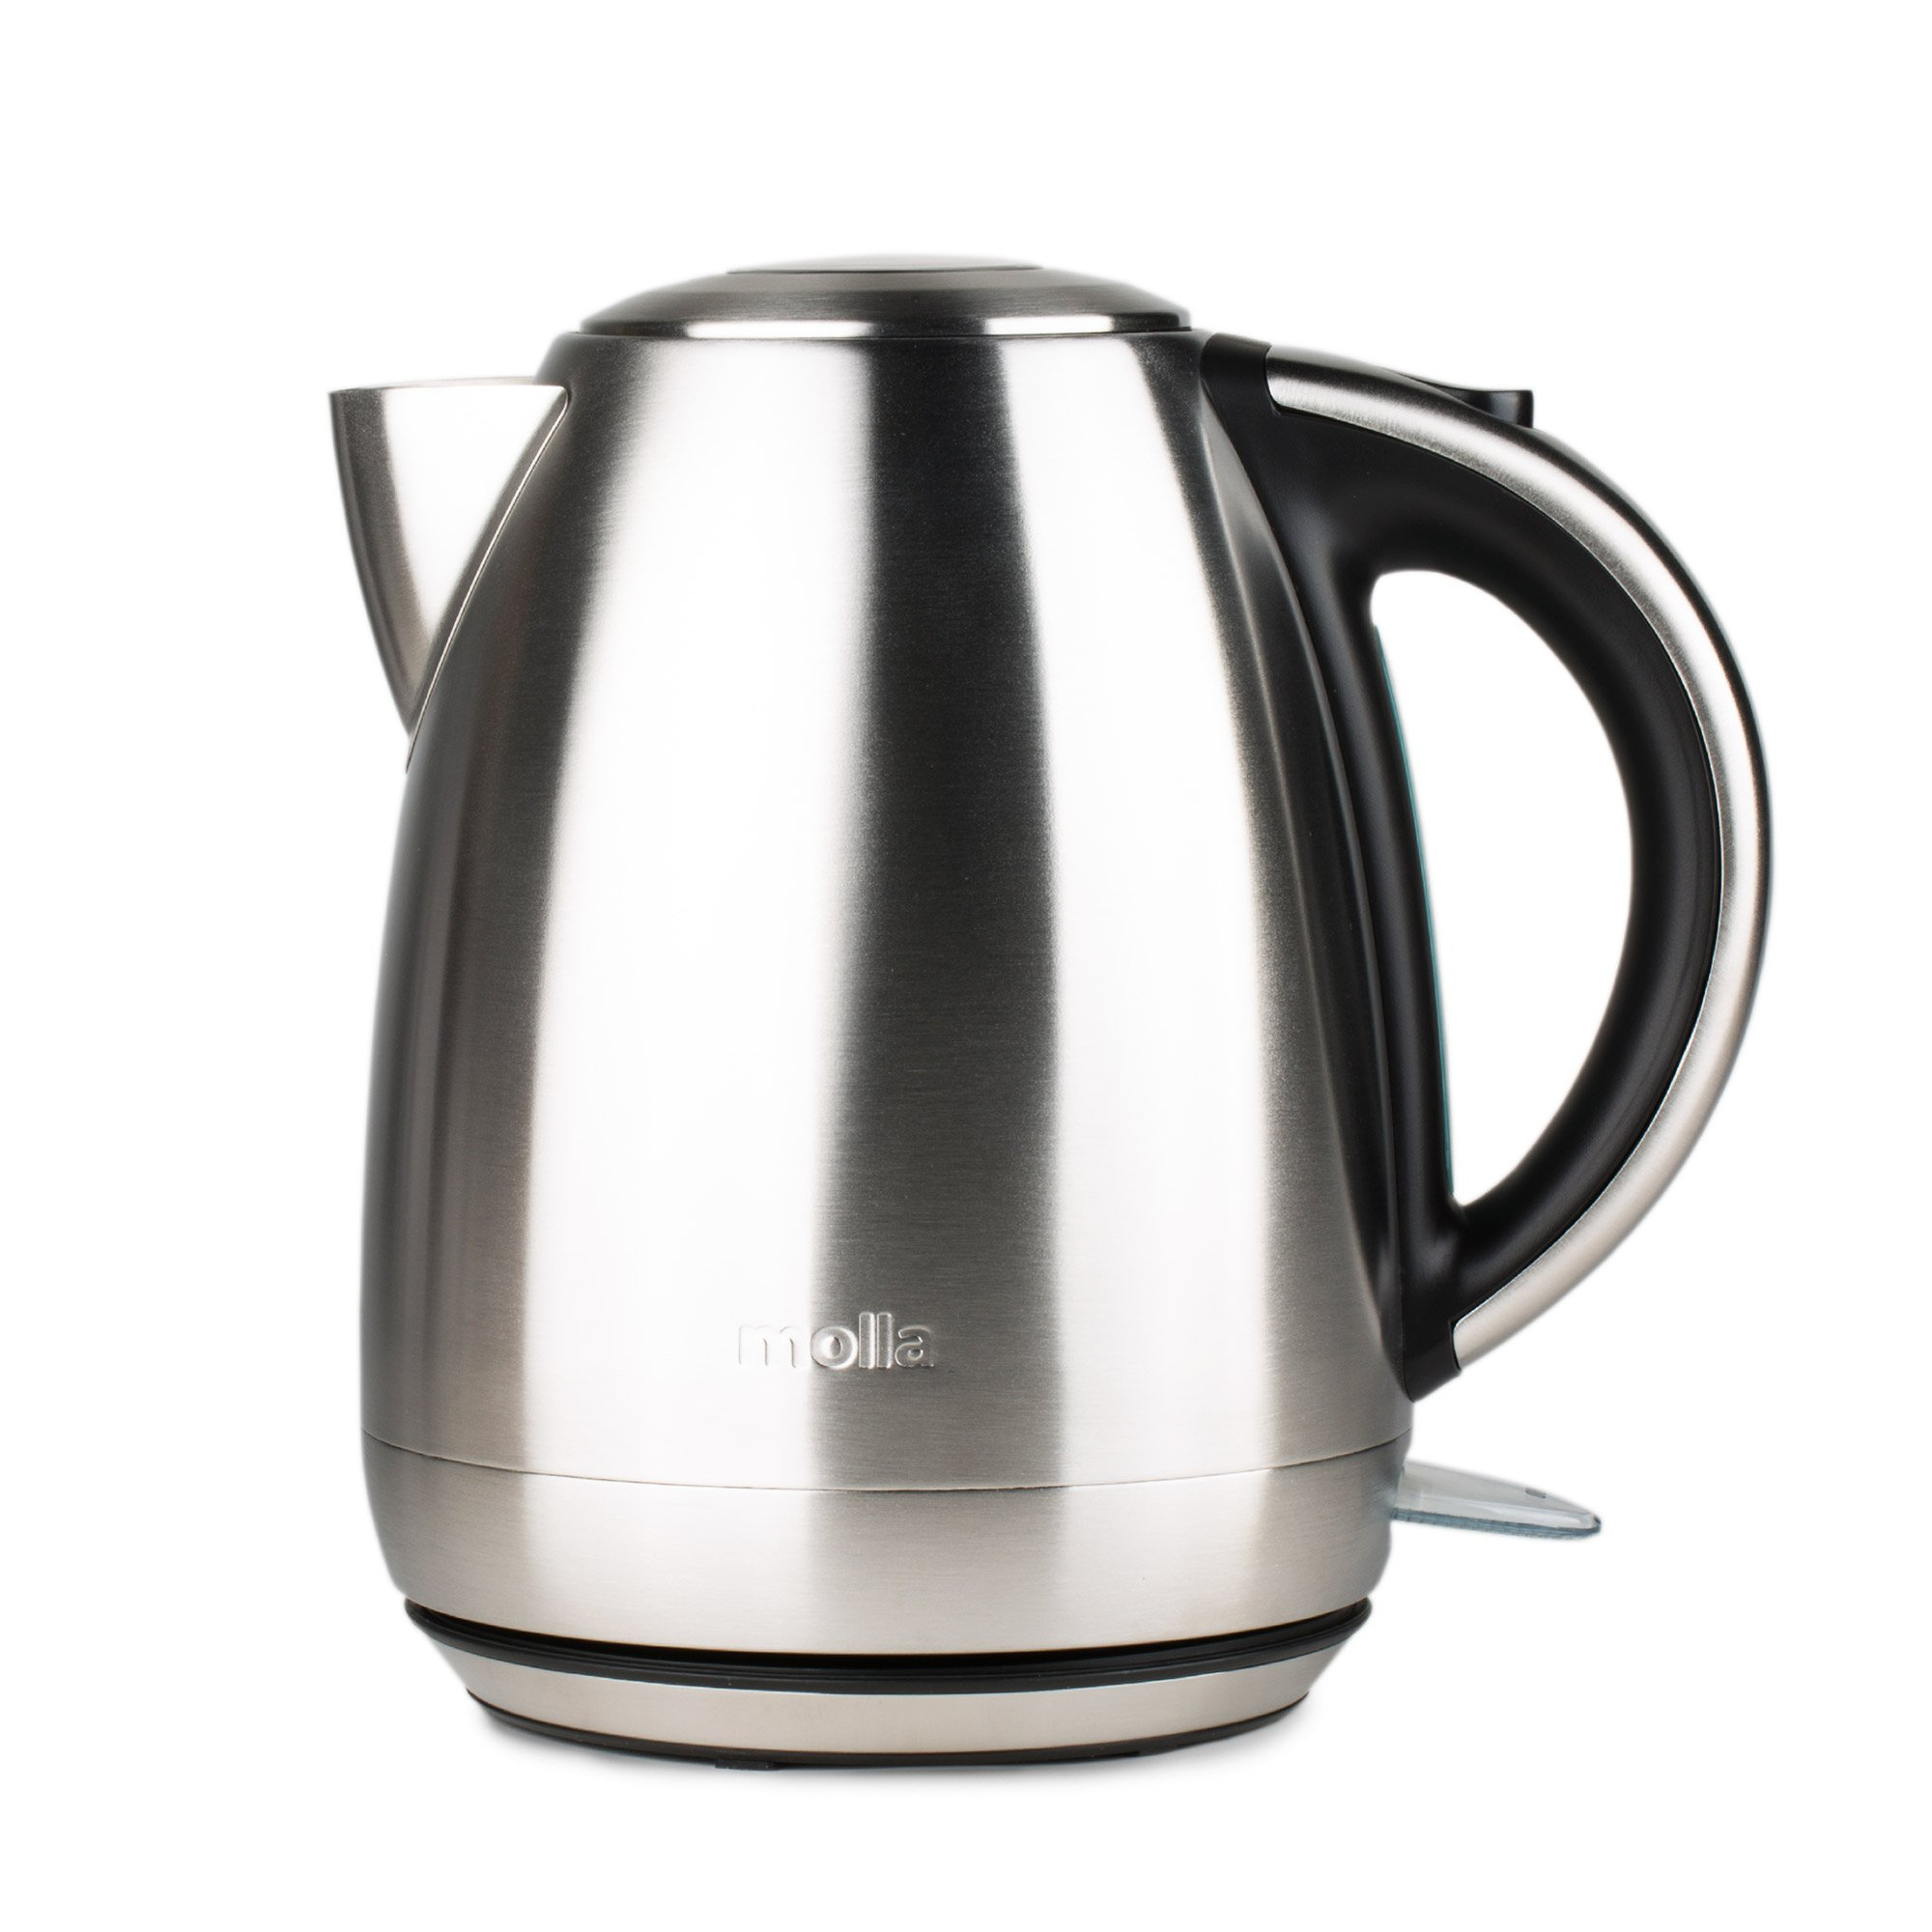 Molla Contento 1.7L Stainless Steel Cordless Electric Water Kettle